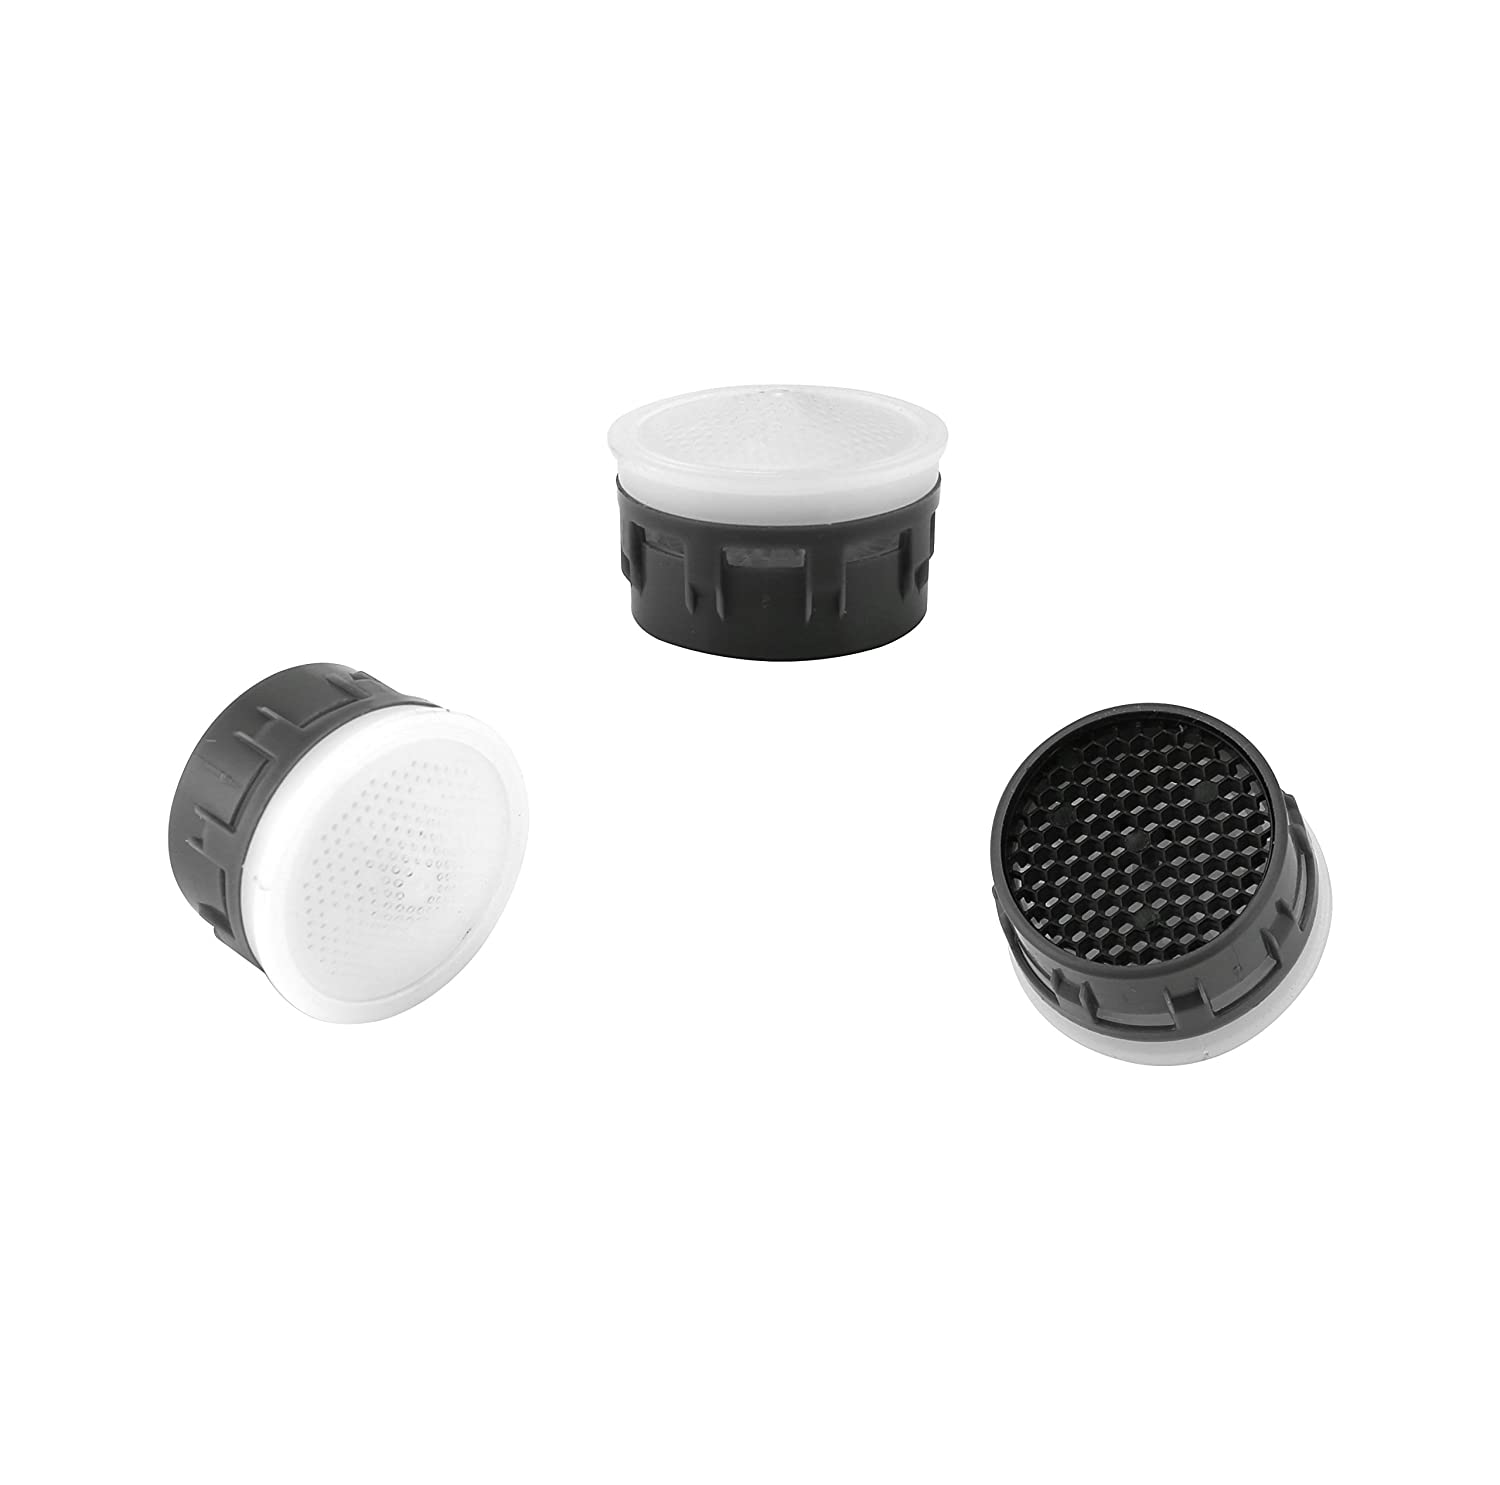 Kelica Faucet Replacement Part Faucet Aerator Insert Tap Flow Restrictor For Bathroom Lavatory or Kithen Sink Faucet, 3 PCS/Pack